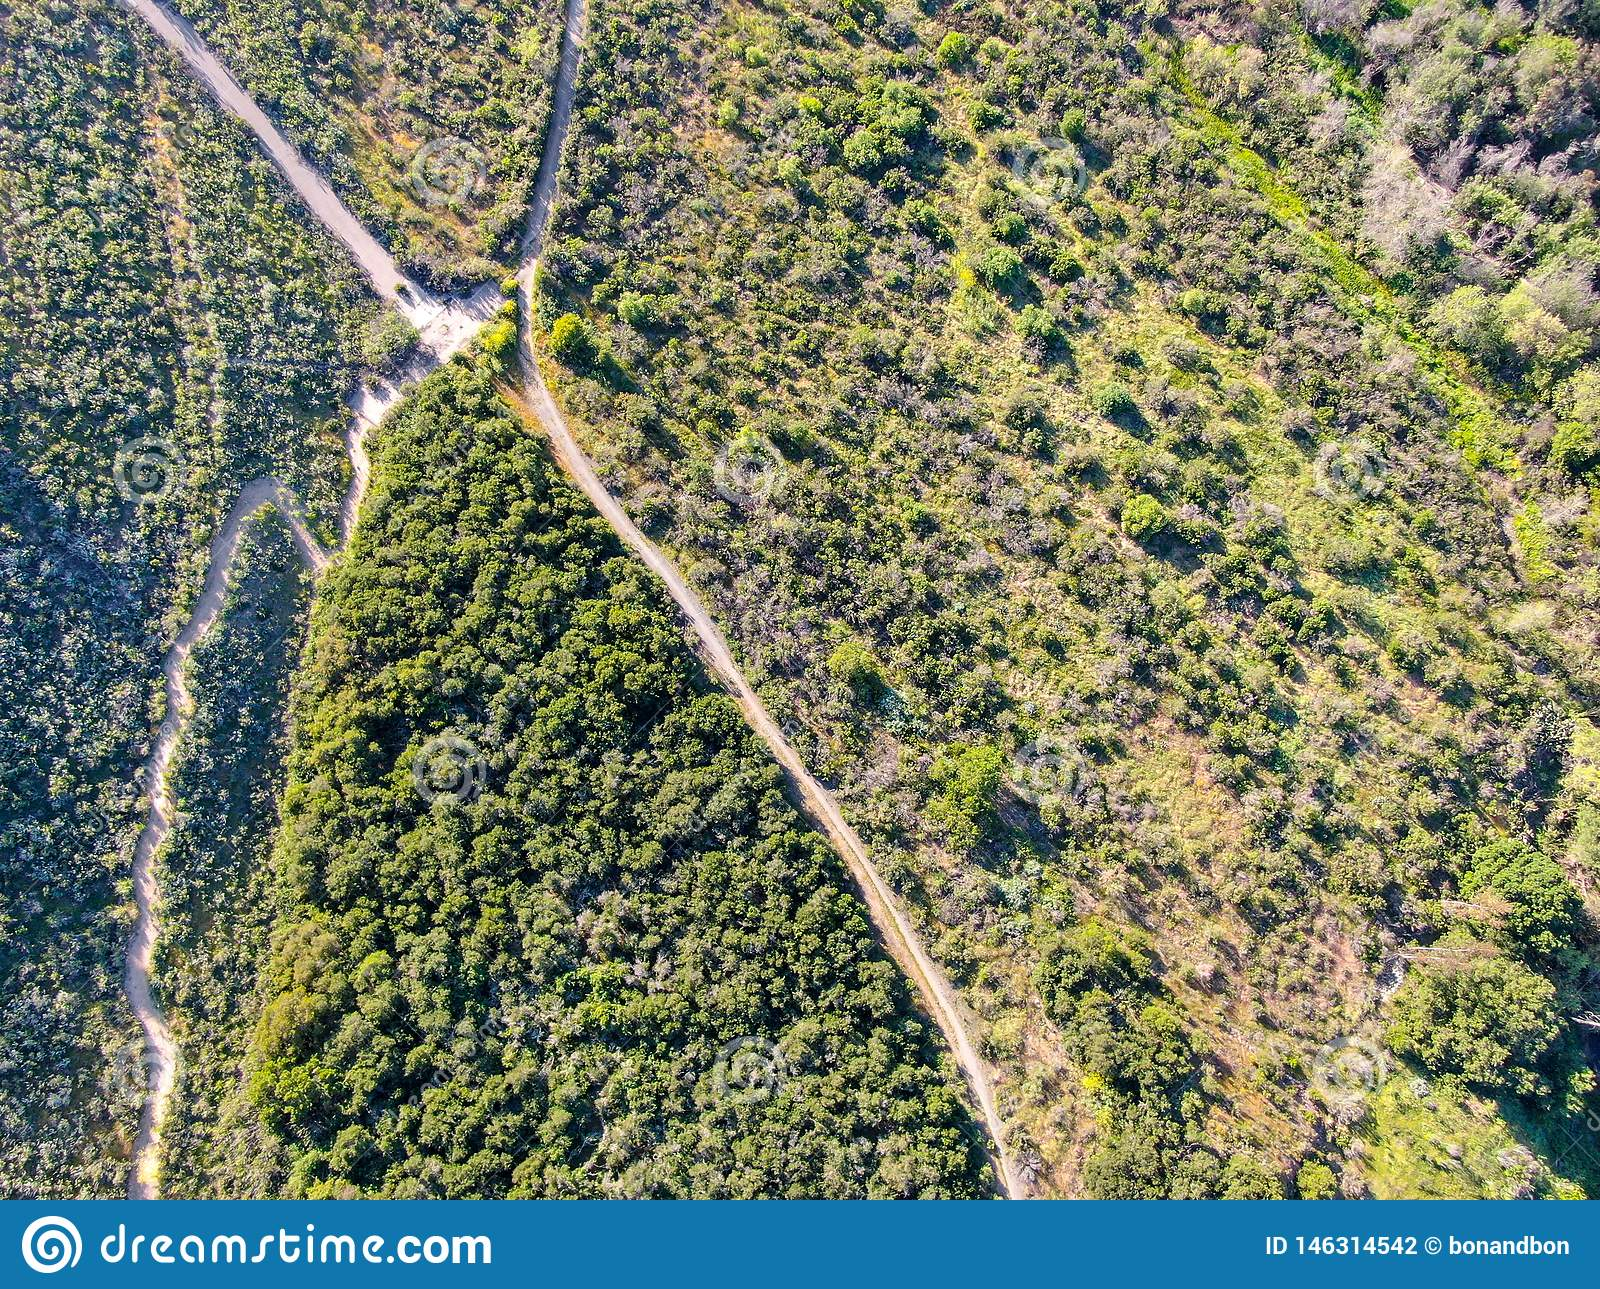 Aerial view of hiking sandy trails in dry green mountain